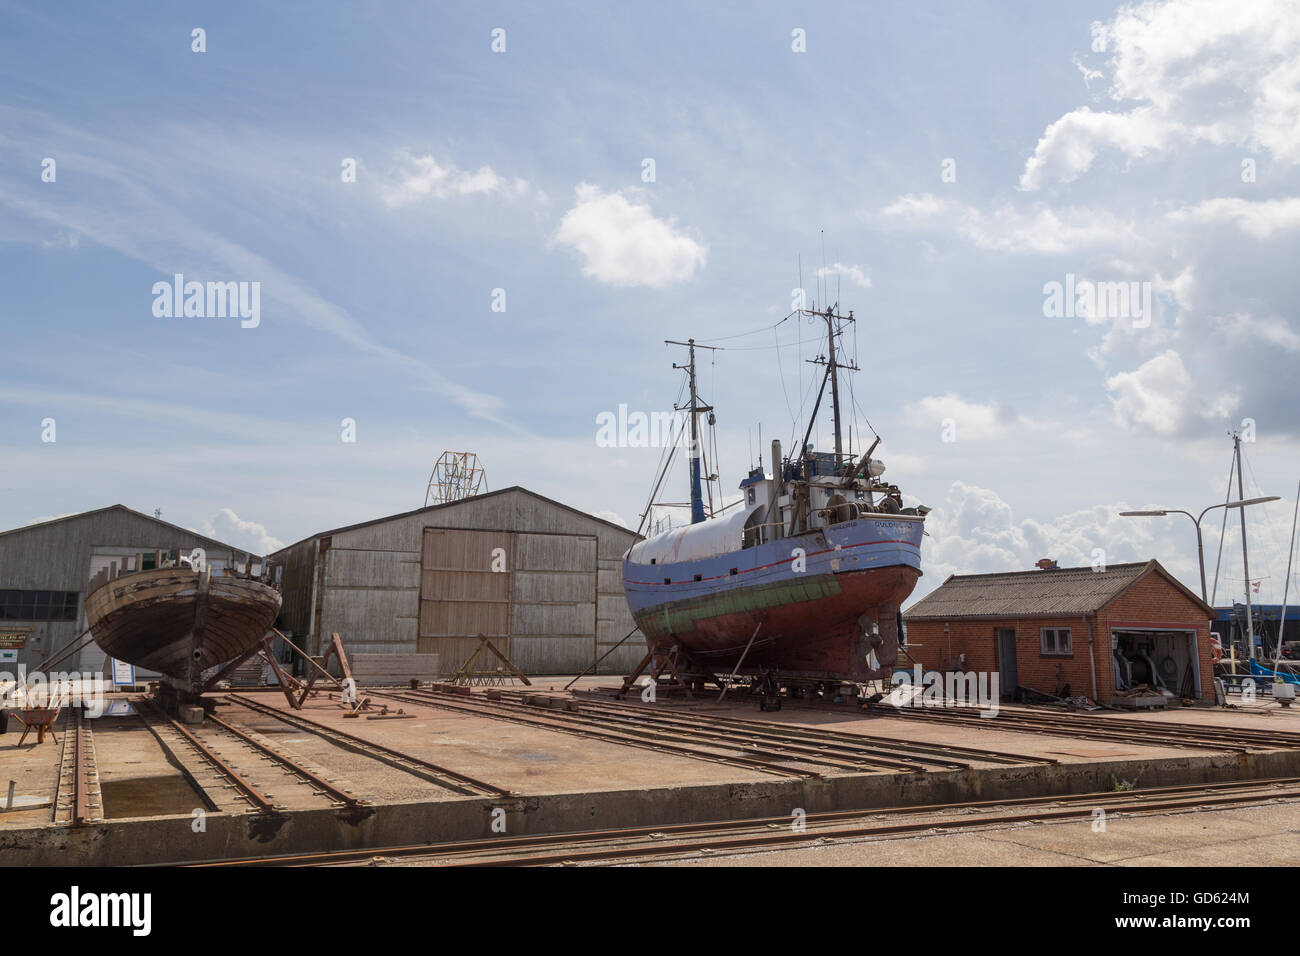 Hundested, Denmark - July 11, 2016: Boats in the dry dock. - Stock Image